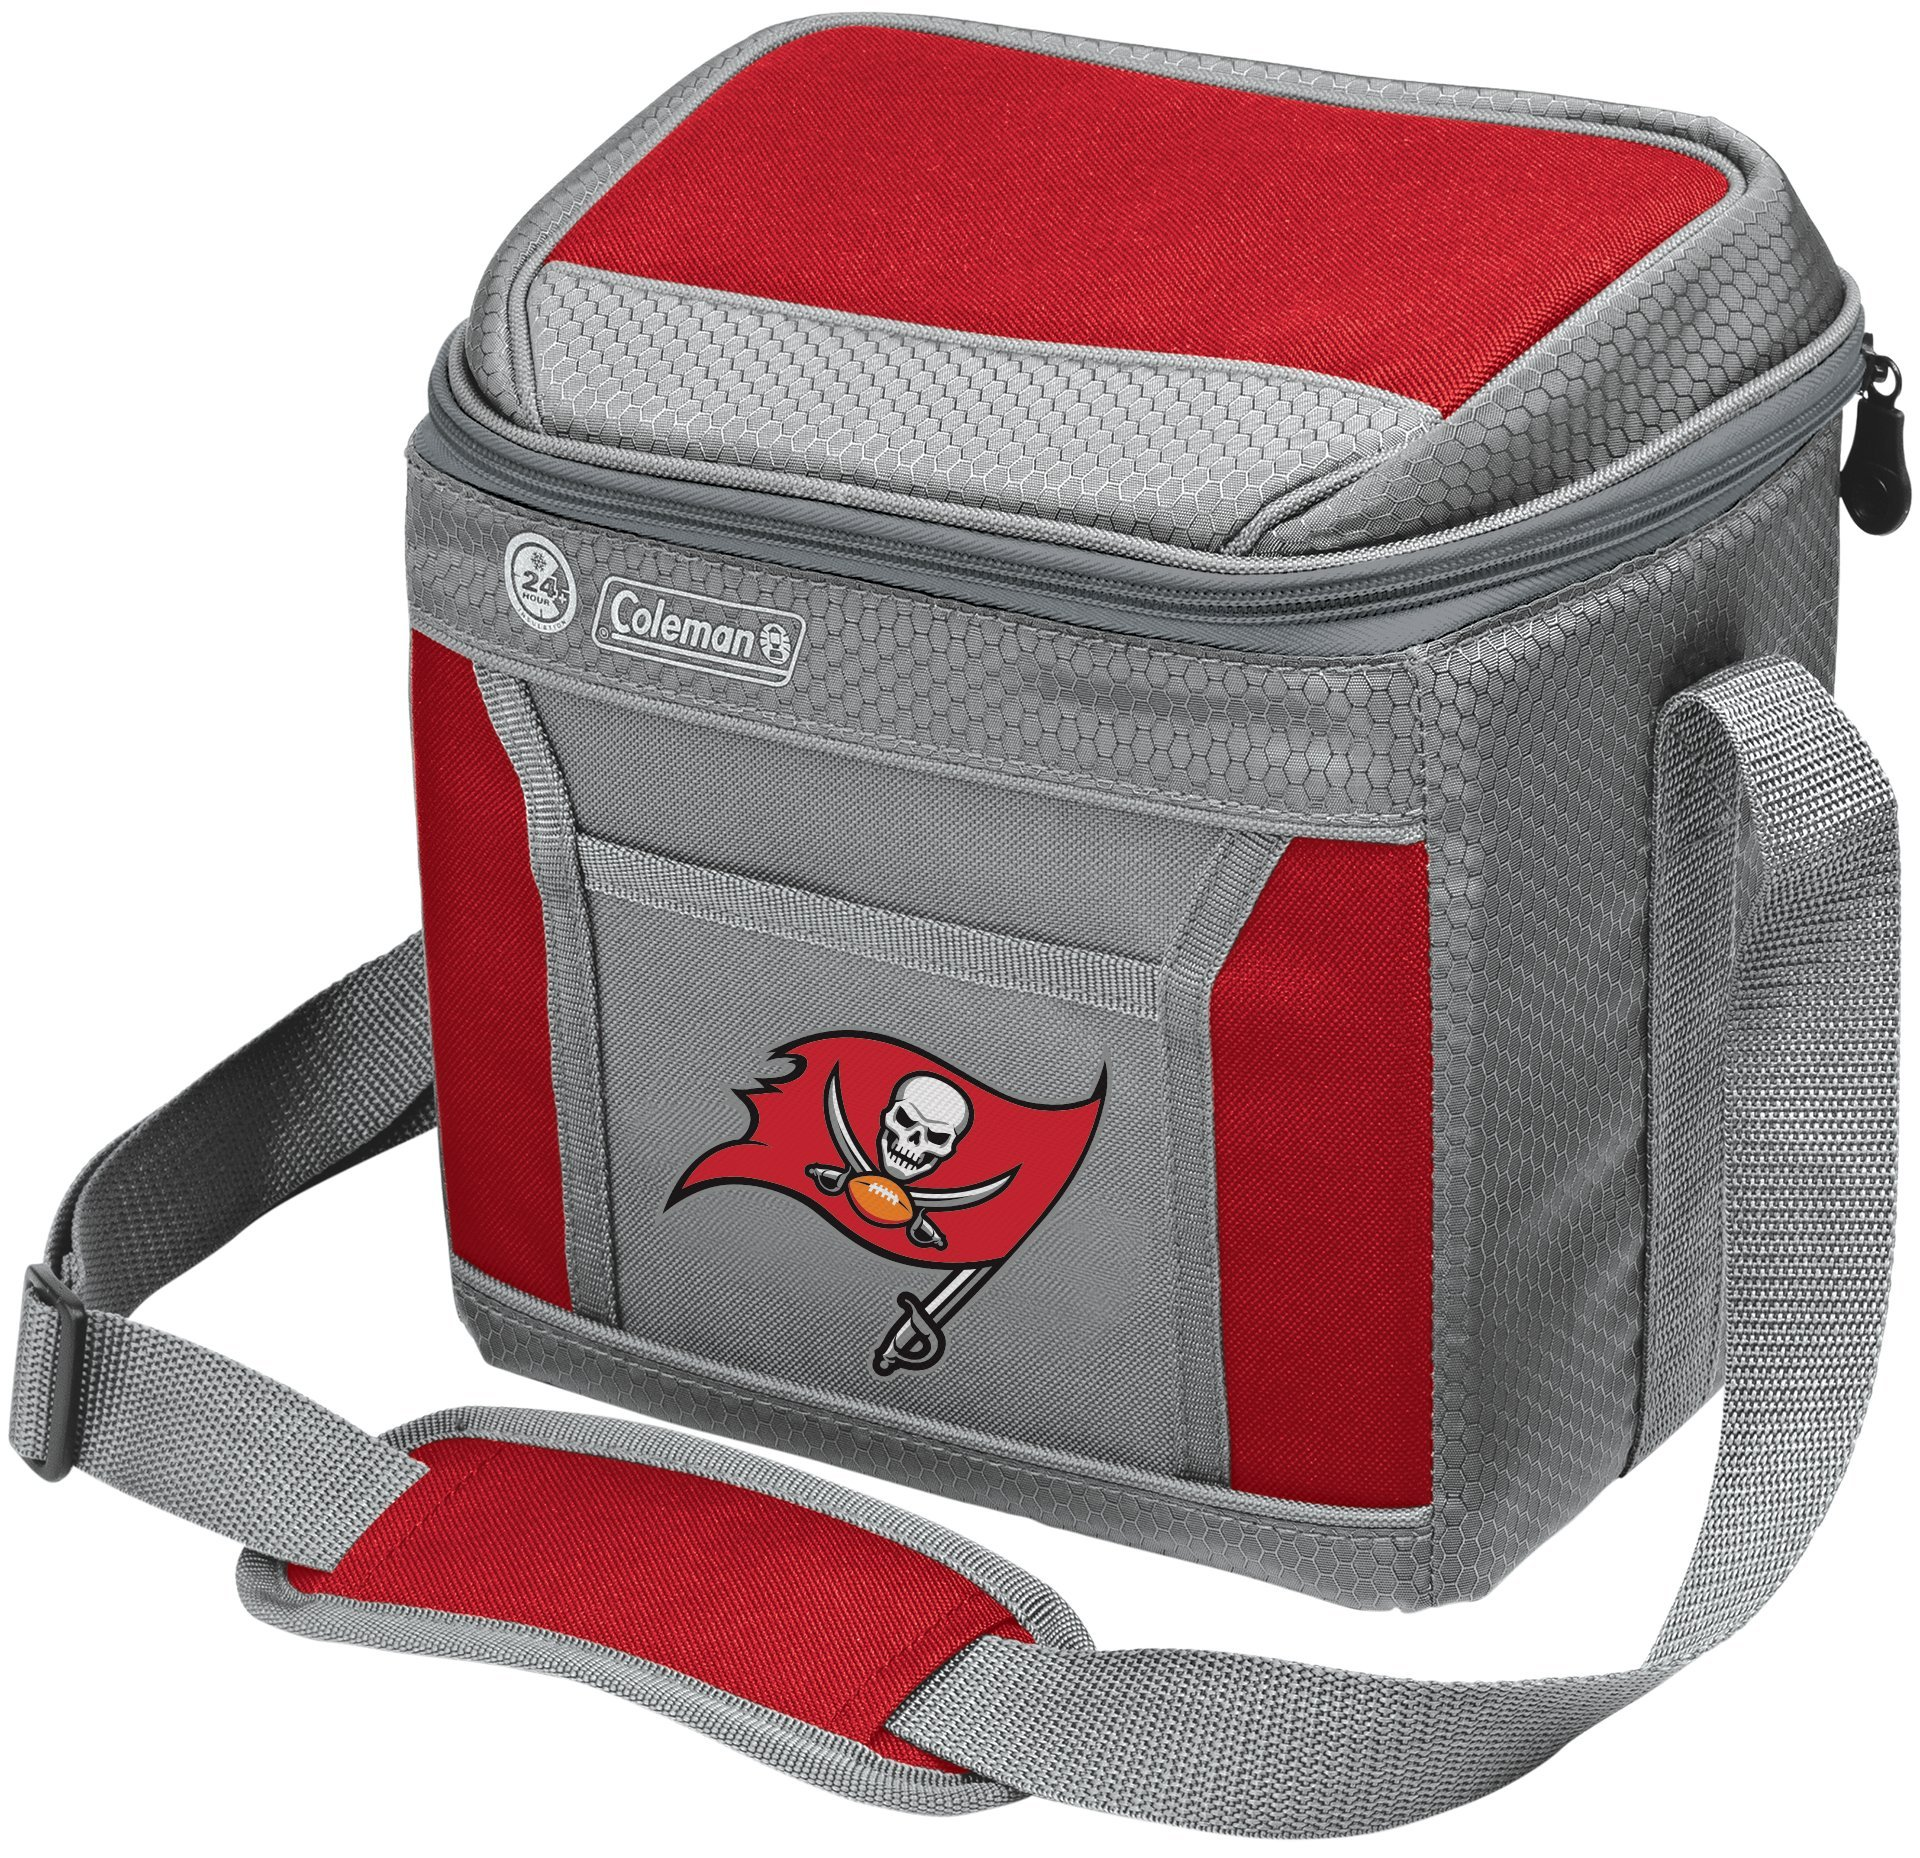 Coleman NFL Soft-Sided Insulated Cooler and Lunch Box Bag, 9-Can Capacity, Tampa Bay Buccaneers by Coleman